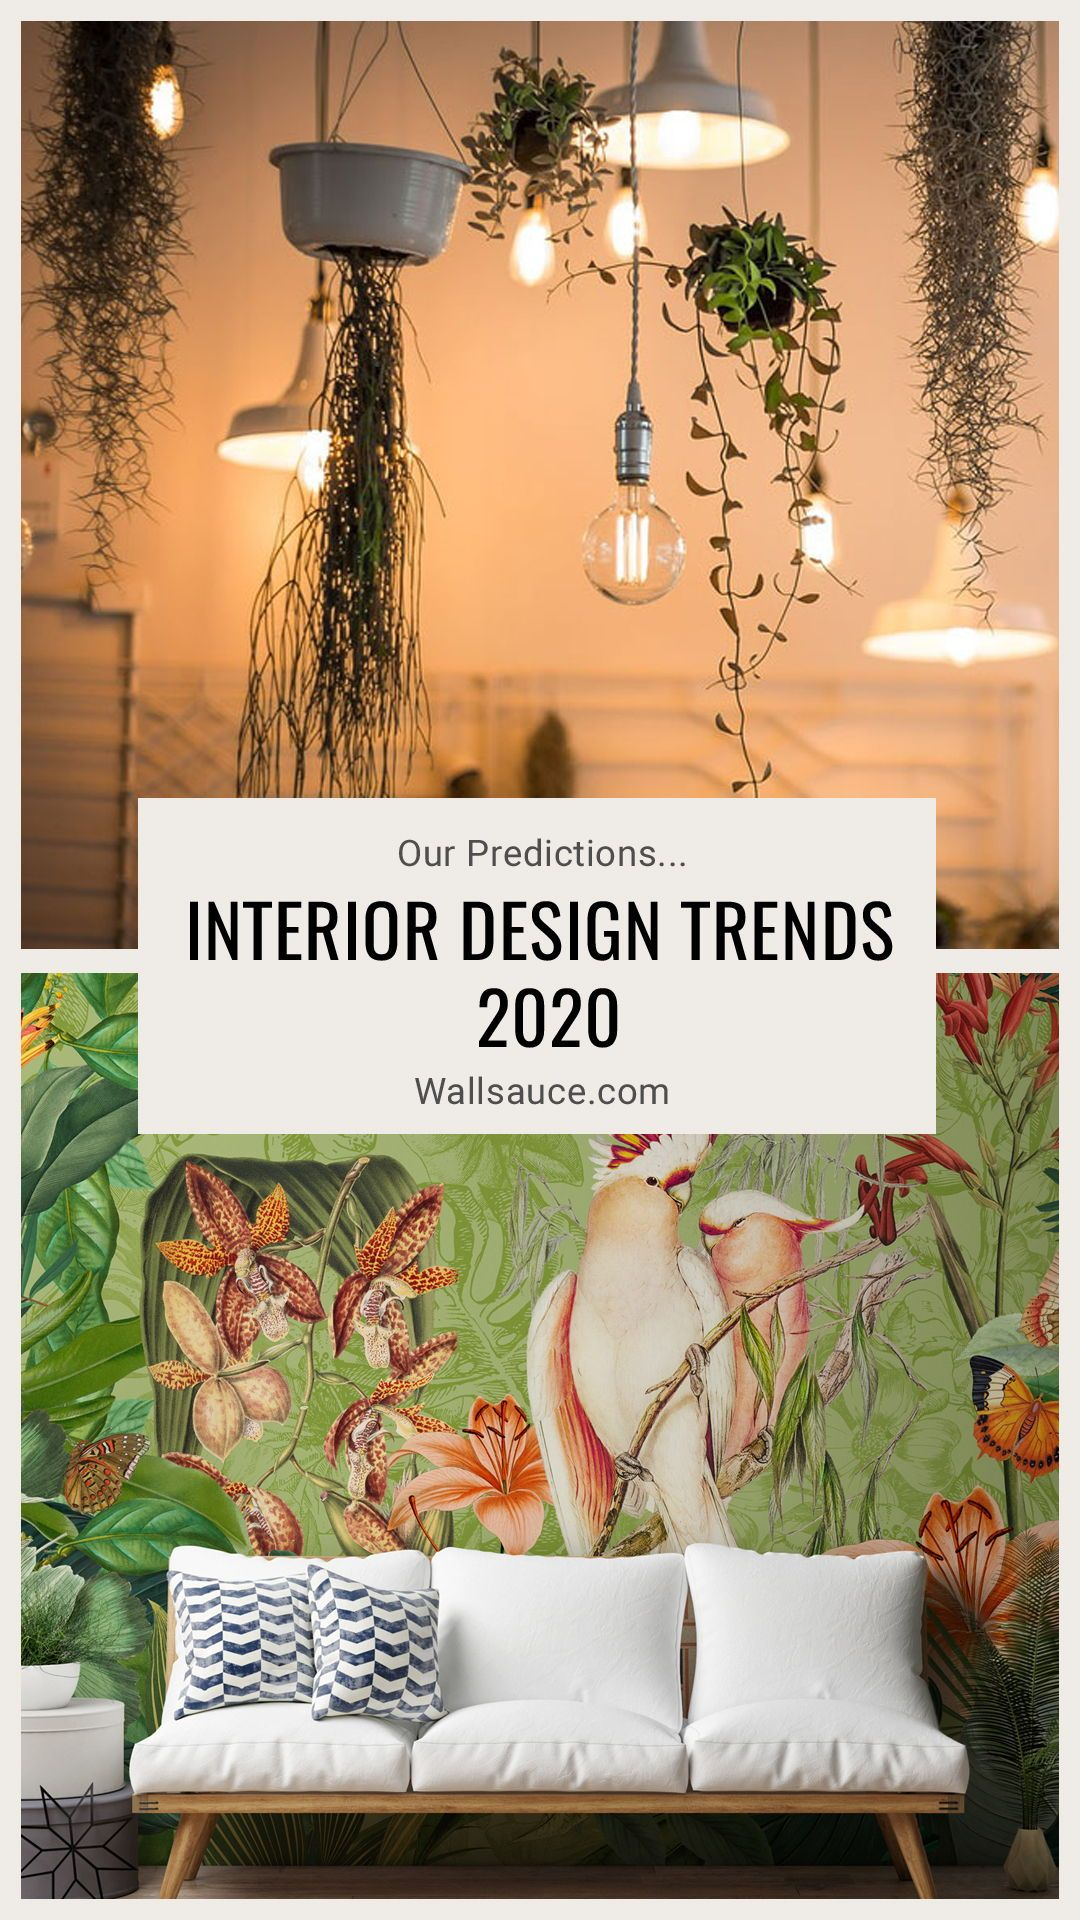 Interior Design Trends 2020: Our Predictions | Wallsauce UK